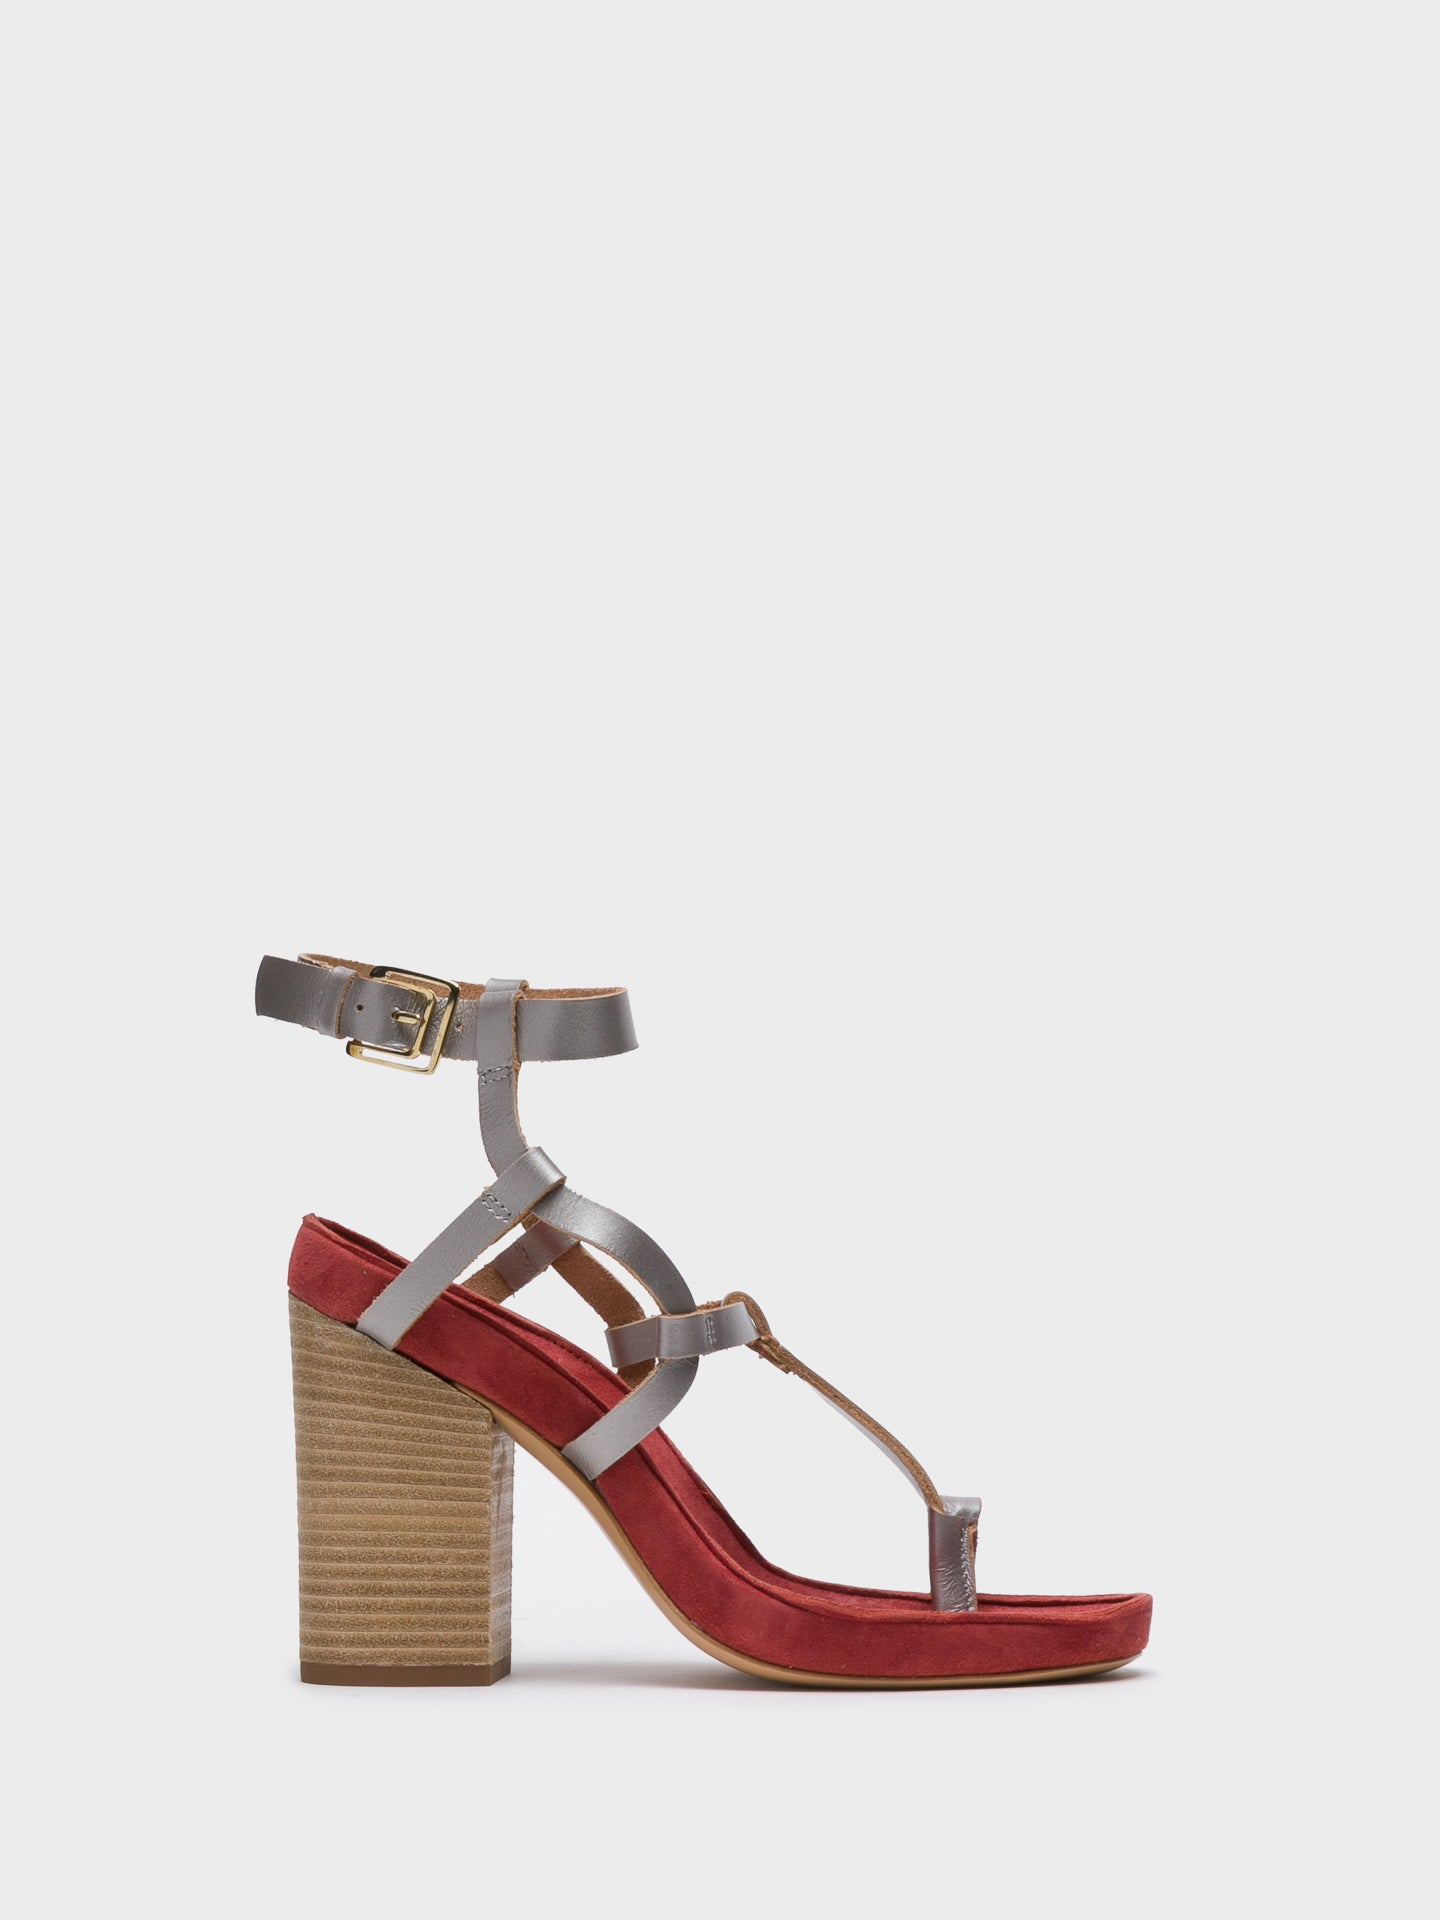 JJ Heitor Multicolor Ankle Strap Sandals